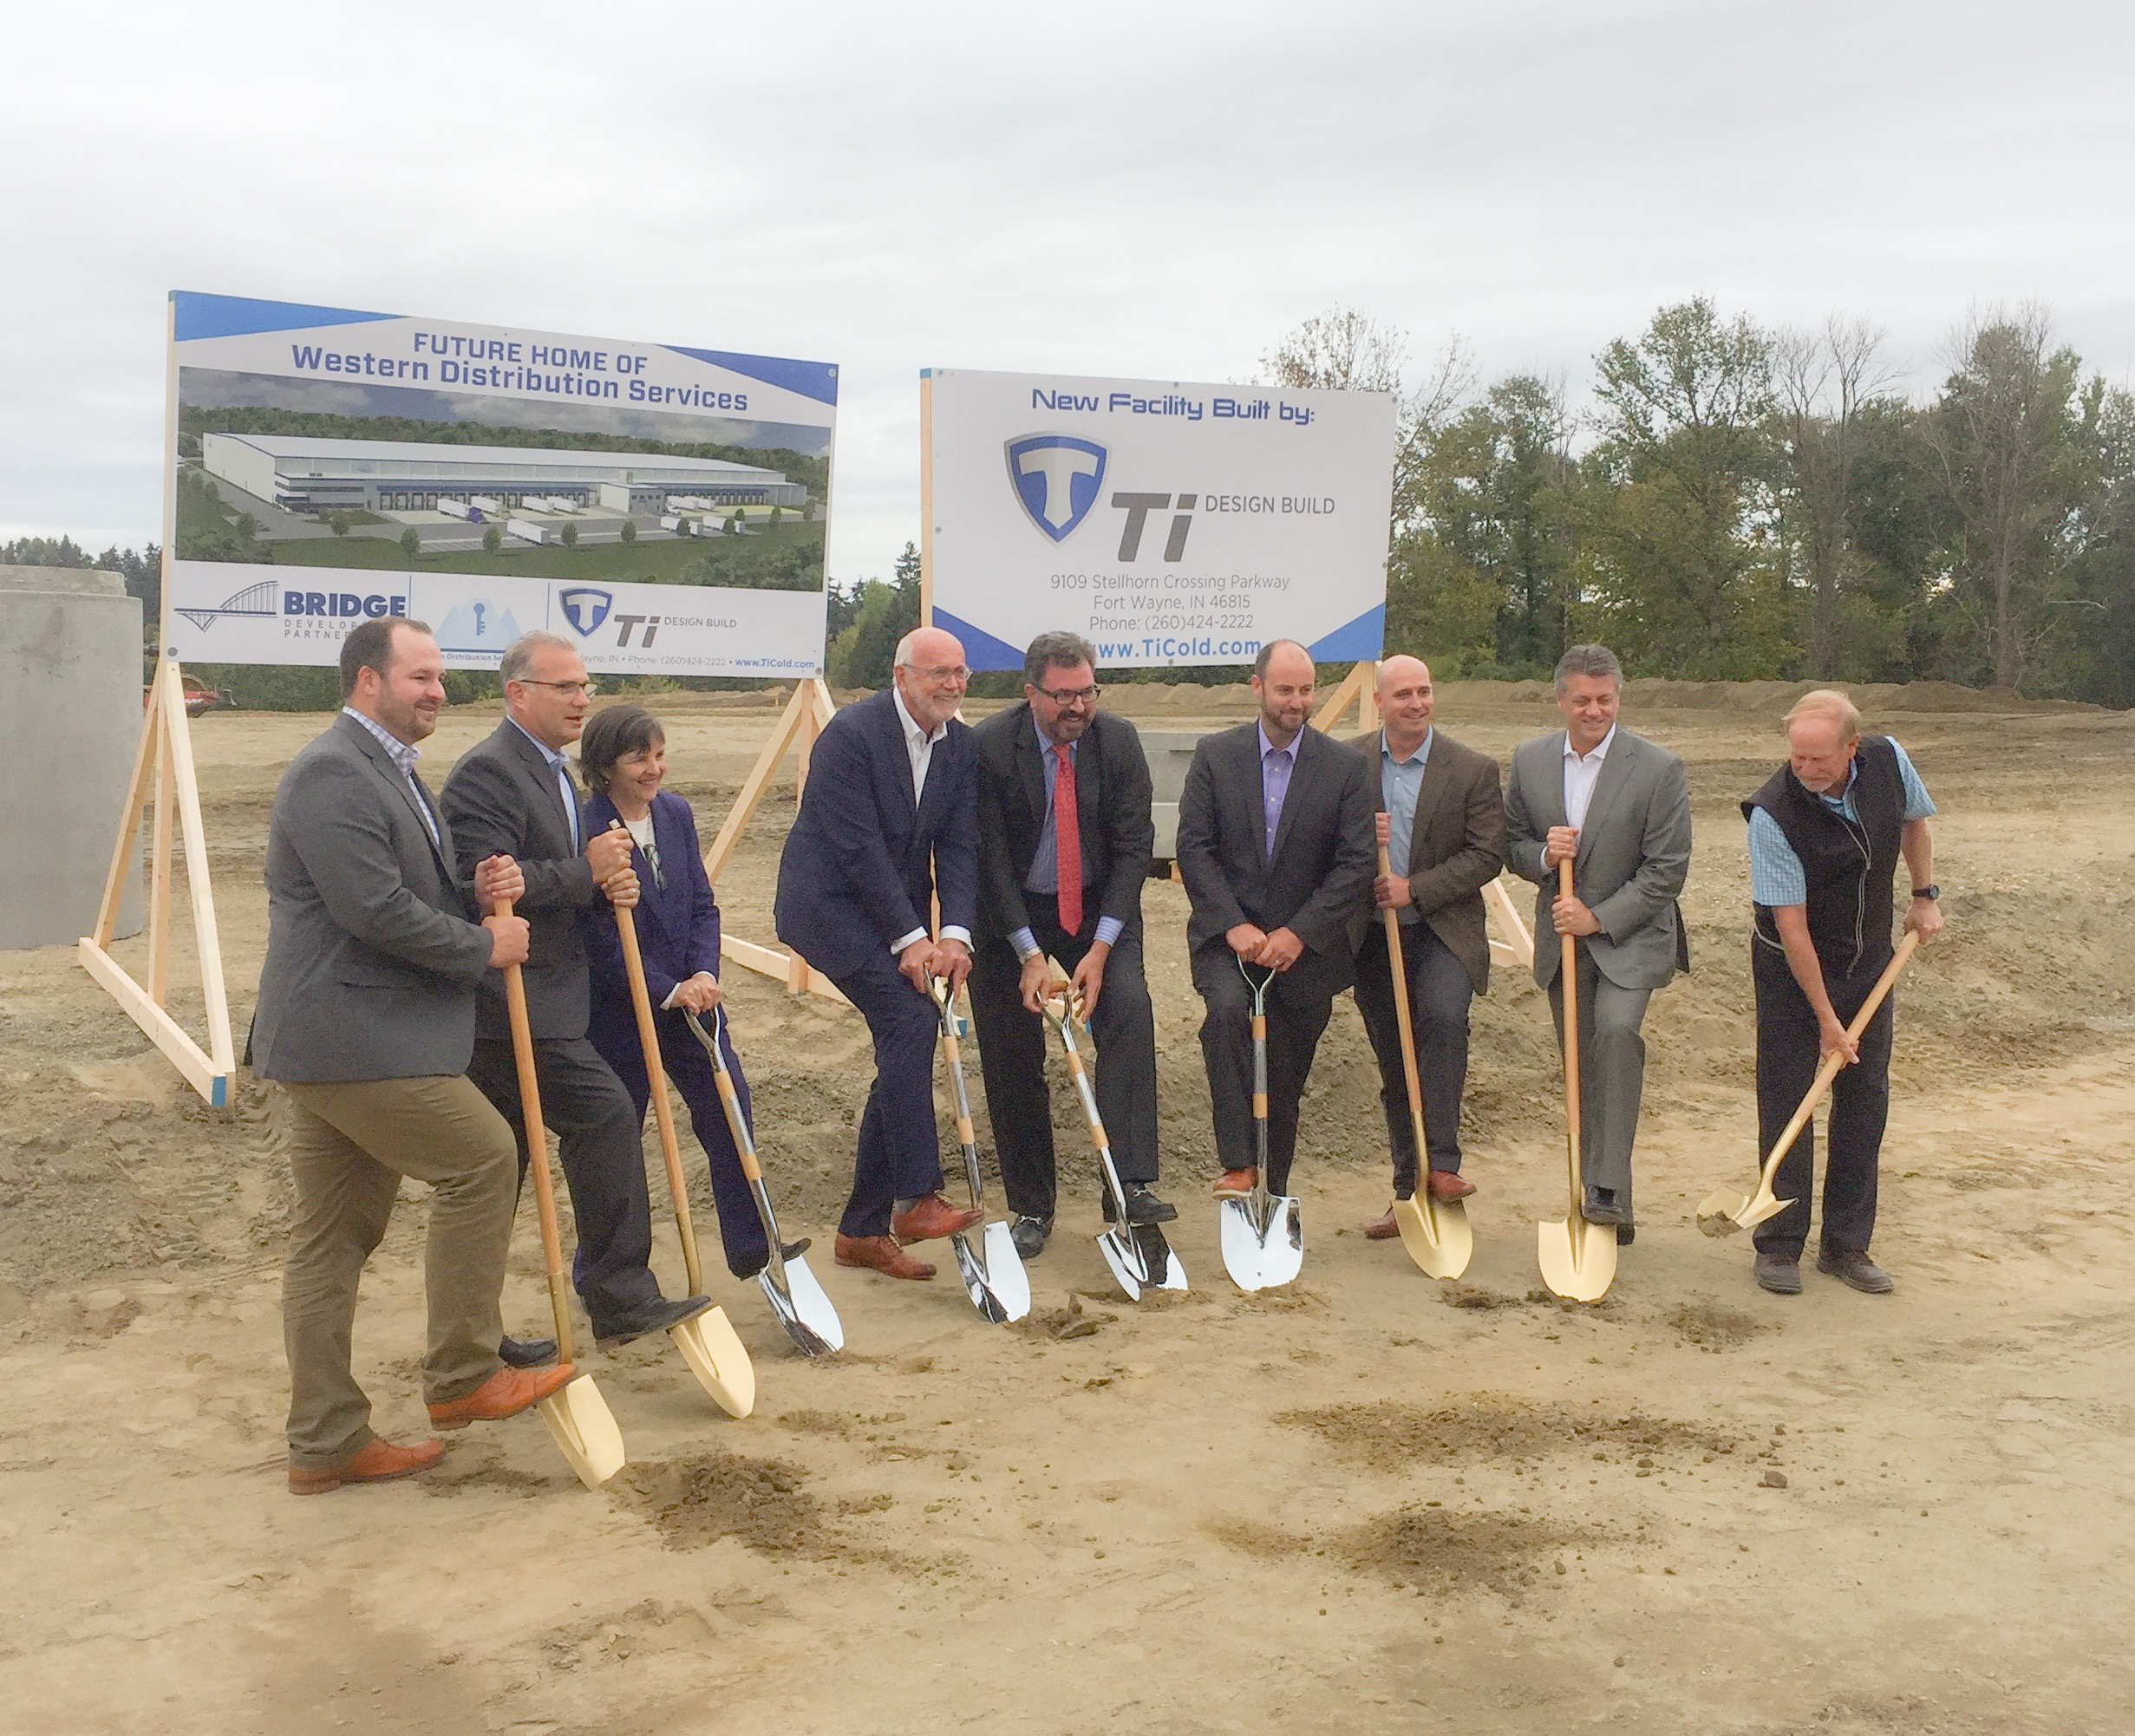 Chicago Based Bridge Development Partners Break Ground On New 241,000 SQ FT  Cold Storage Facility In Burien